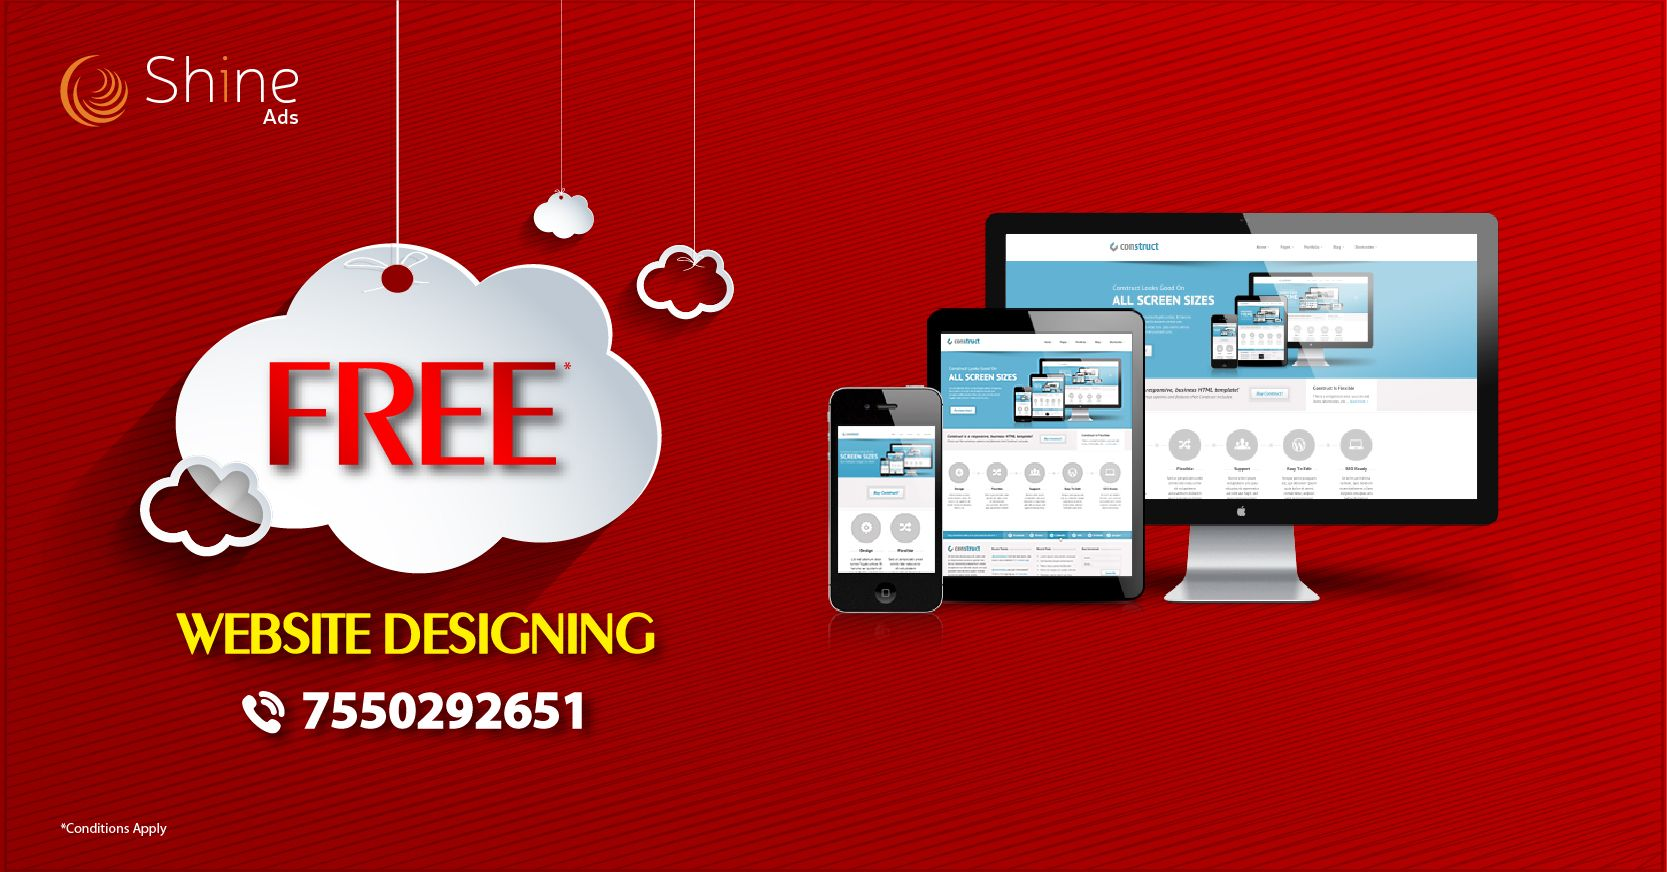 Greetings from Shine Ads! We have a special offers for you